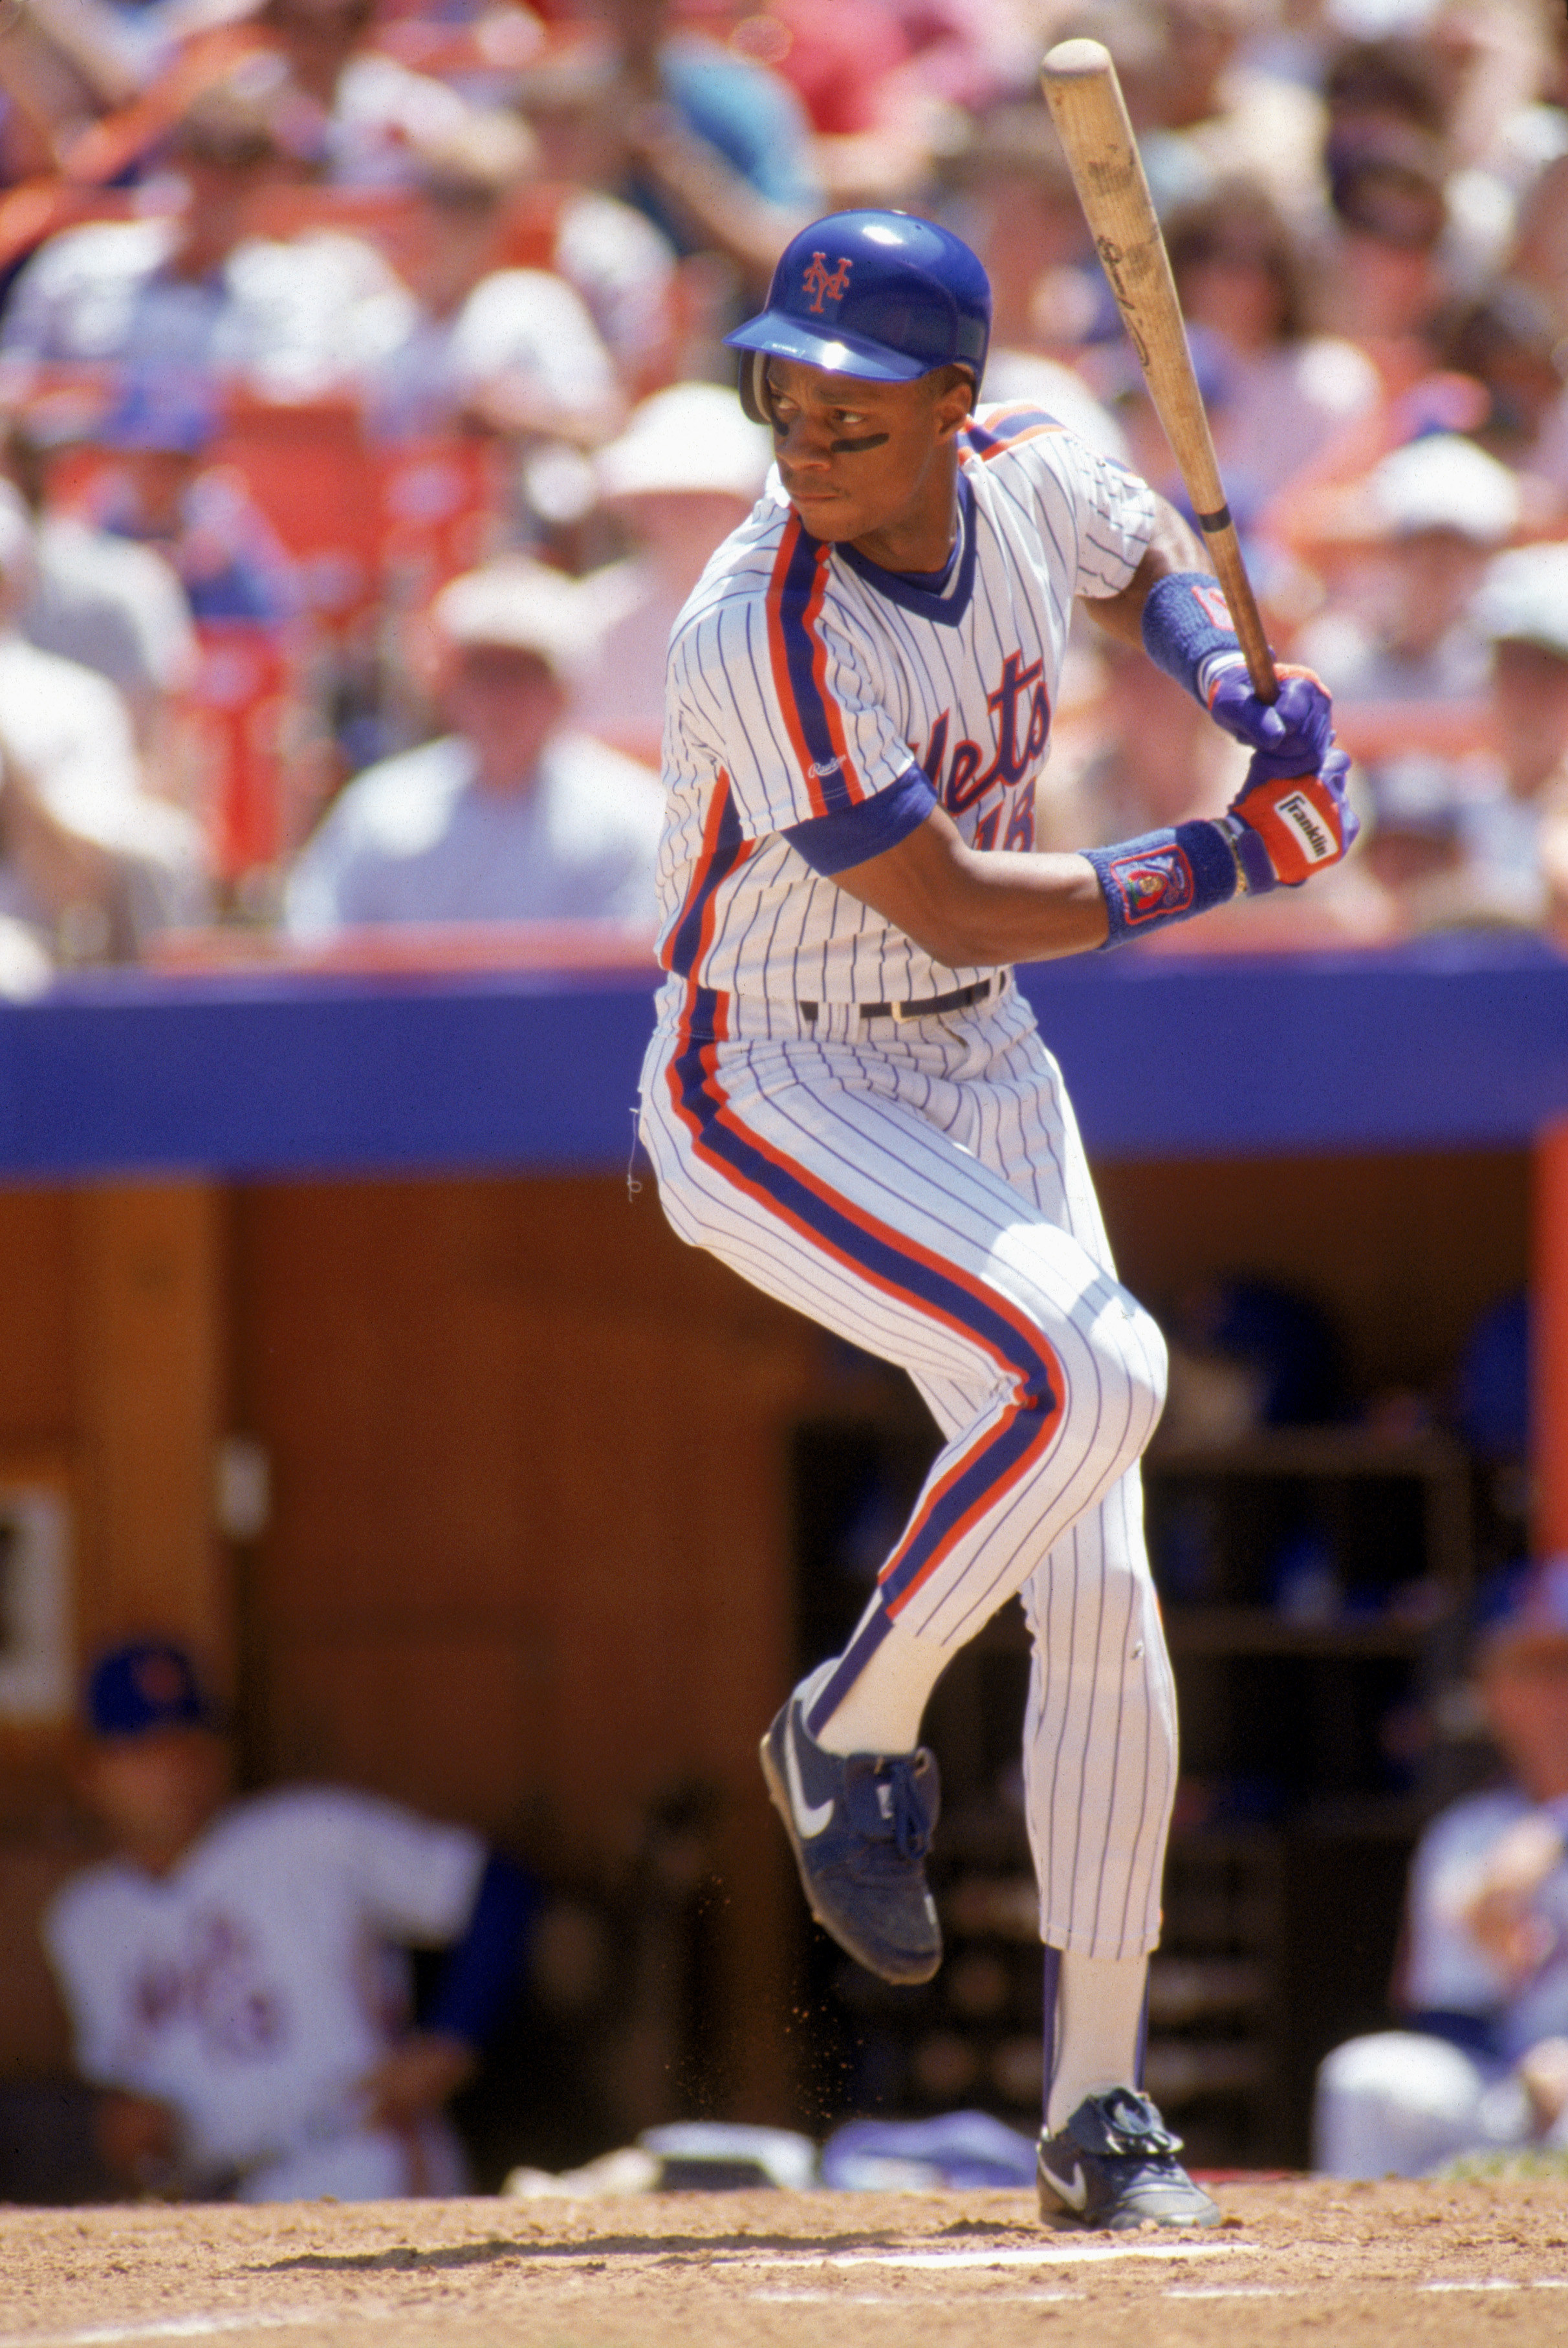 Darryl Strawberry ready to swing his bat